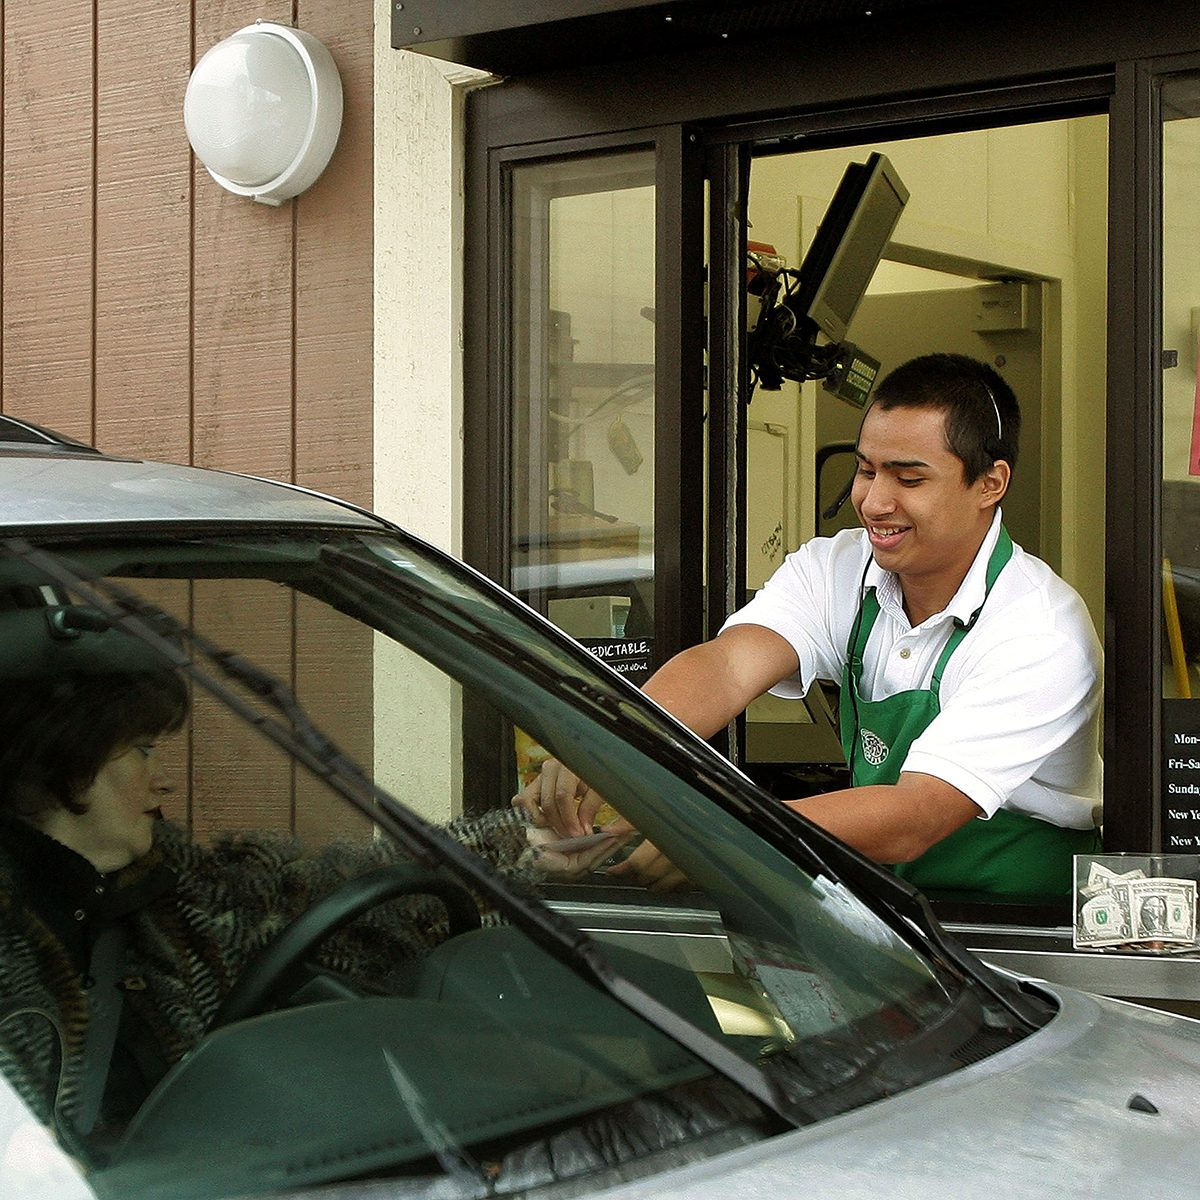 WHEELING, IL - DECEMBER 28: Starbucks worker Freddie Arteaga assists a customer with her drink order at a Starbucks drive-thru December 28, 2005 in Wheeling, Illinois. Starbucks is investing in the drive-thru market for coffee drinkers on the go. (Photo by Tim Boyle/Getty Images)